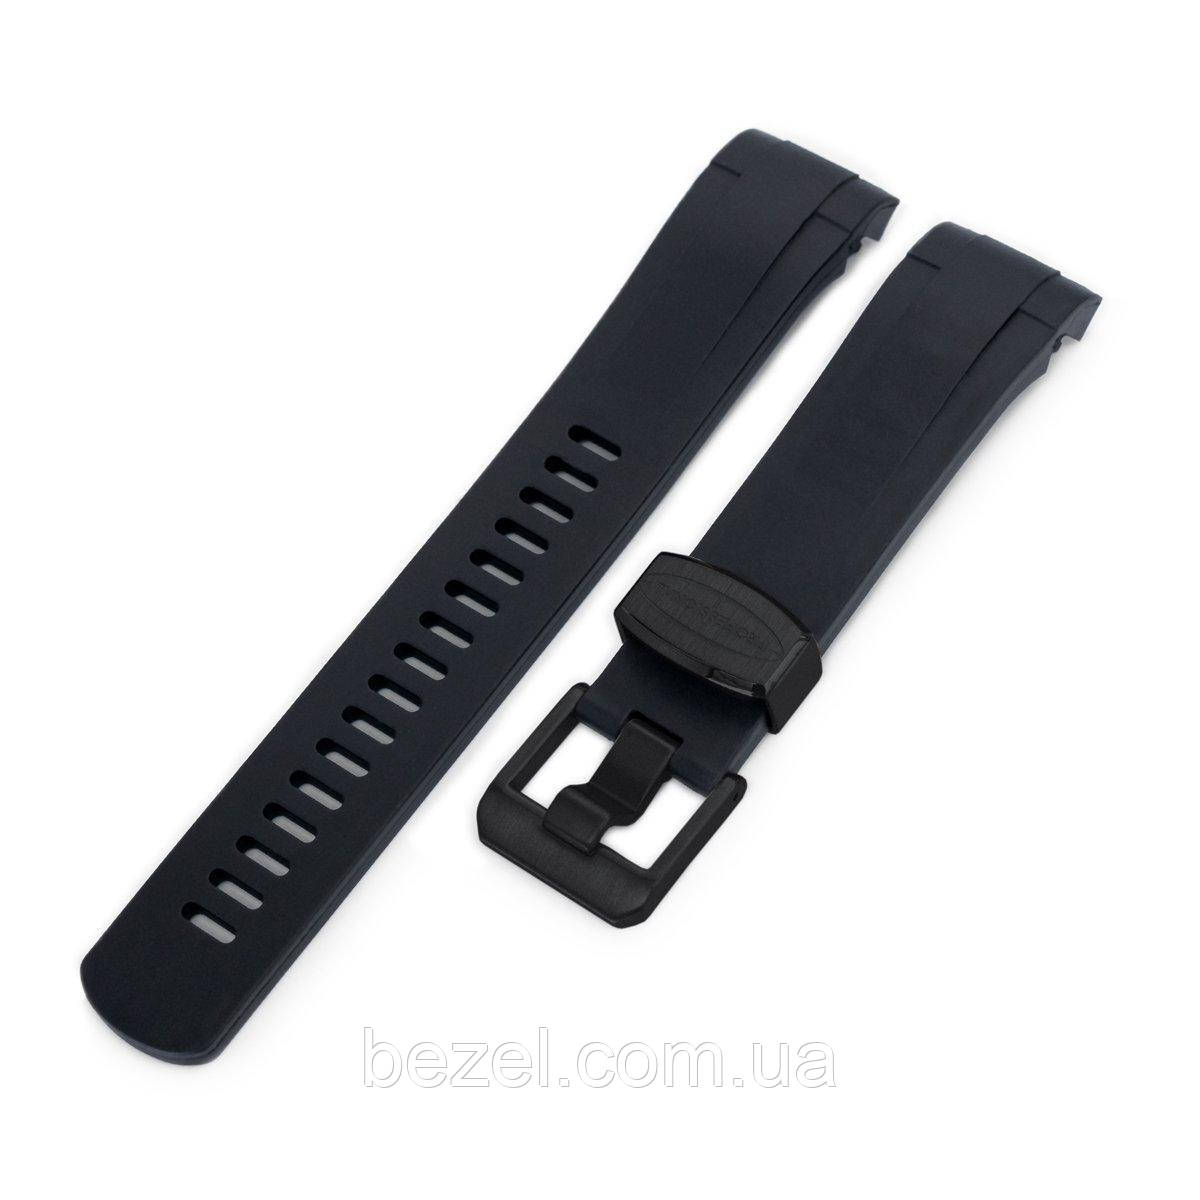 22mm Crafter Blue - Black Rubber Curved Lug Watch Strap for Tudor Black Bay M79230, PVD Black Buckle